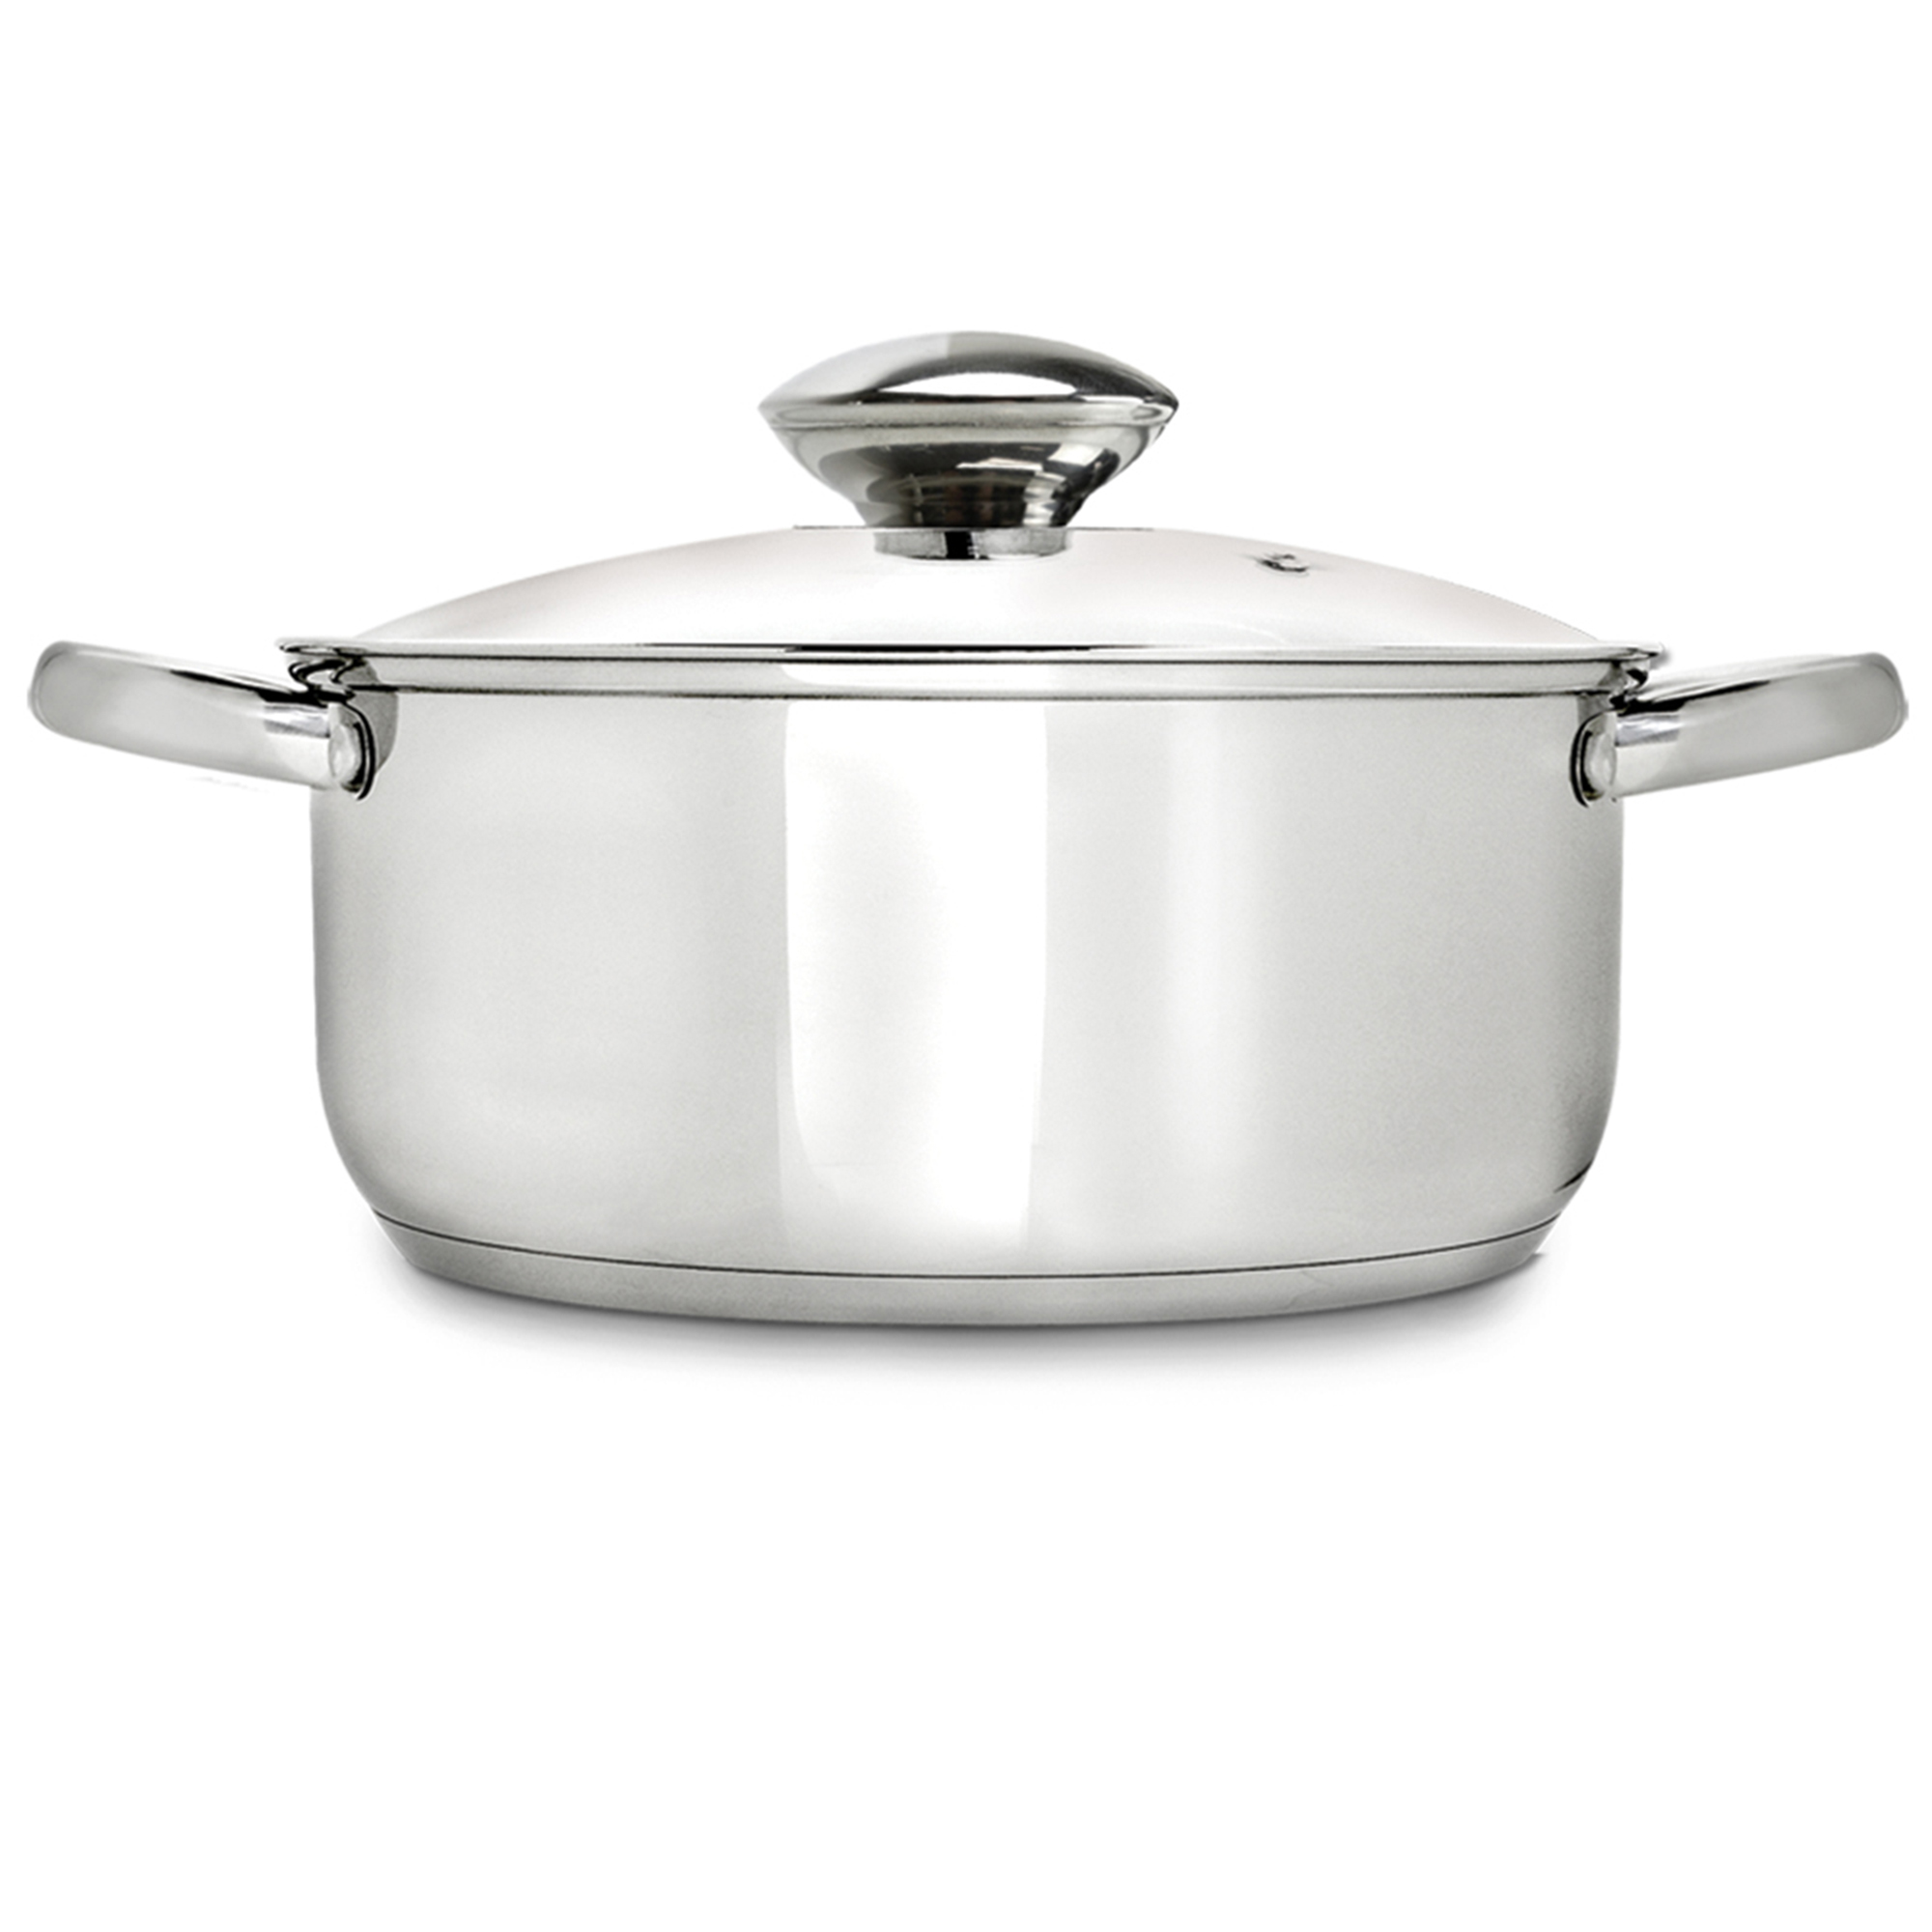 Ecolution Estl4505 Steel Dutch Oven 5 Quart Tempered Glass Lid